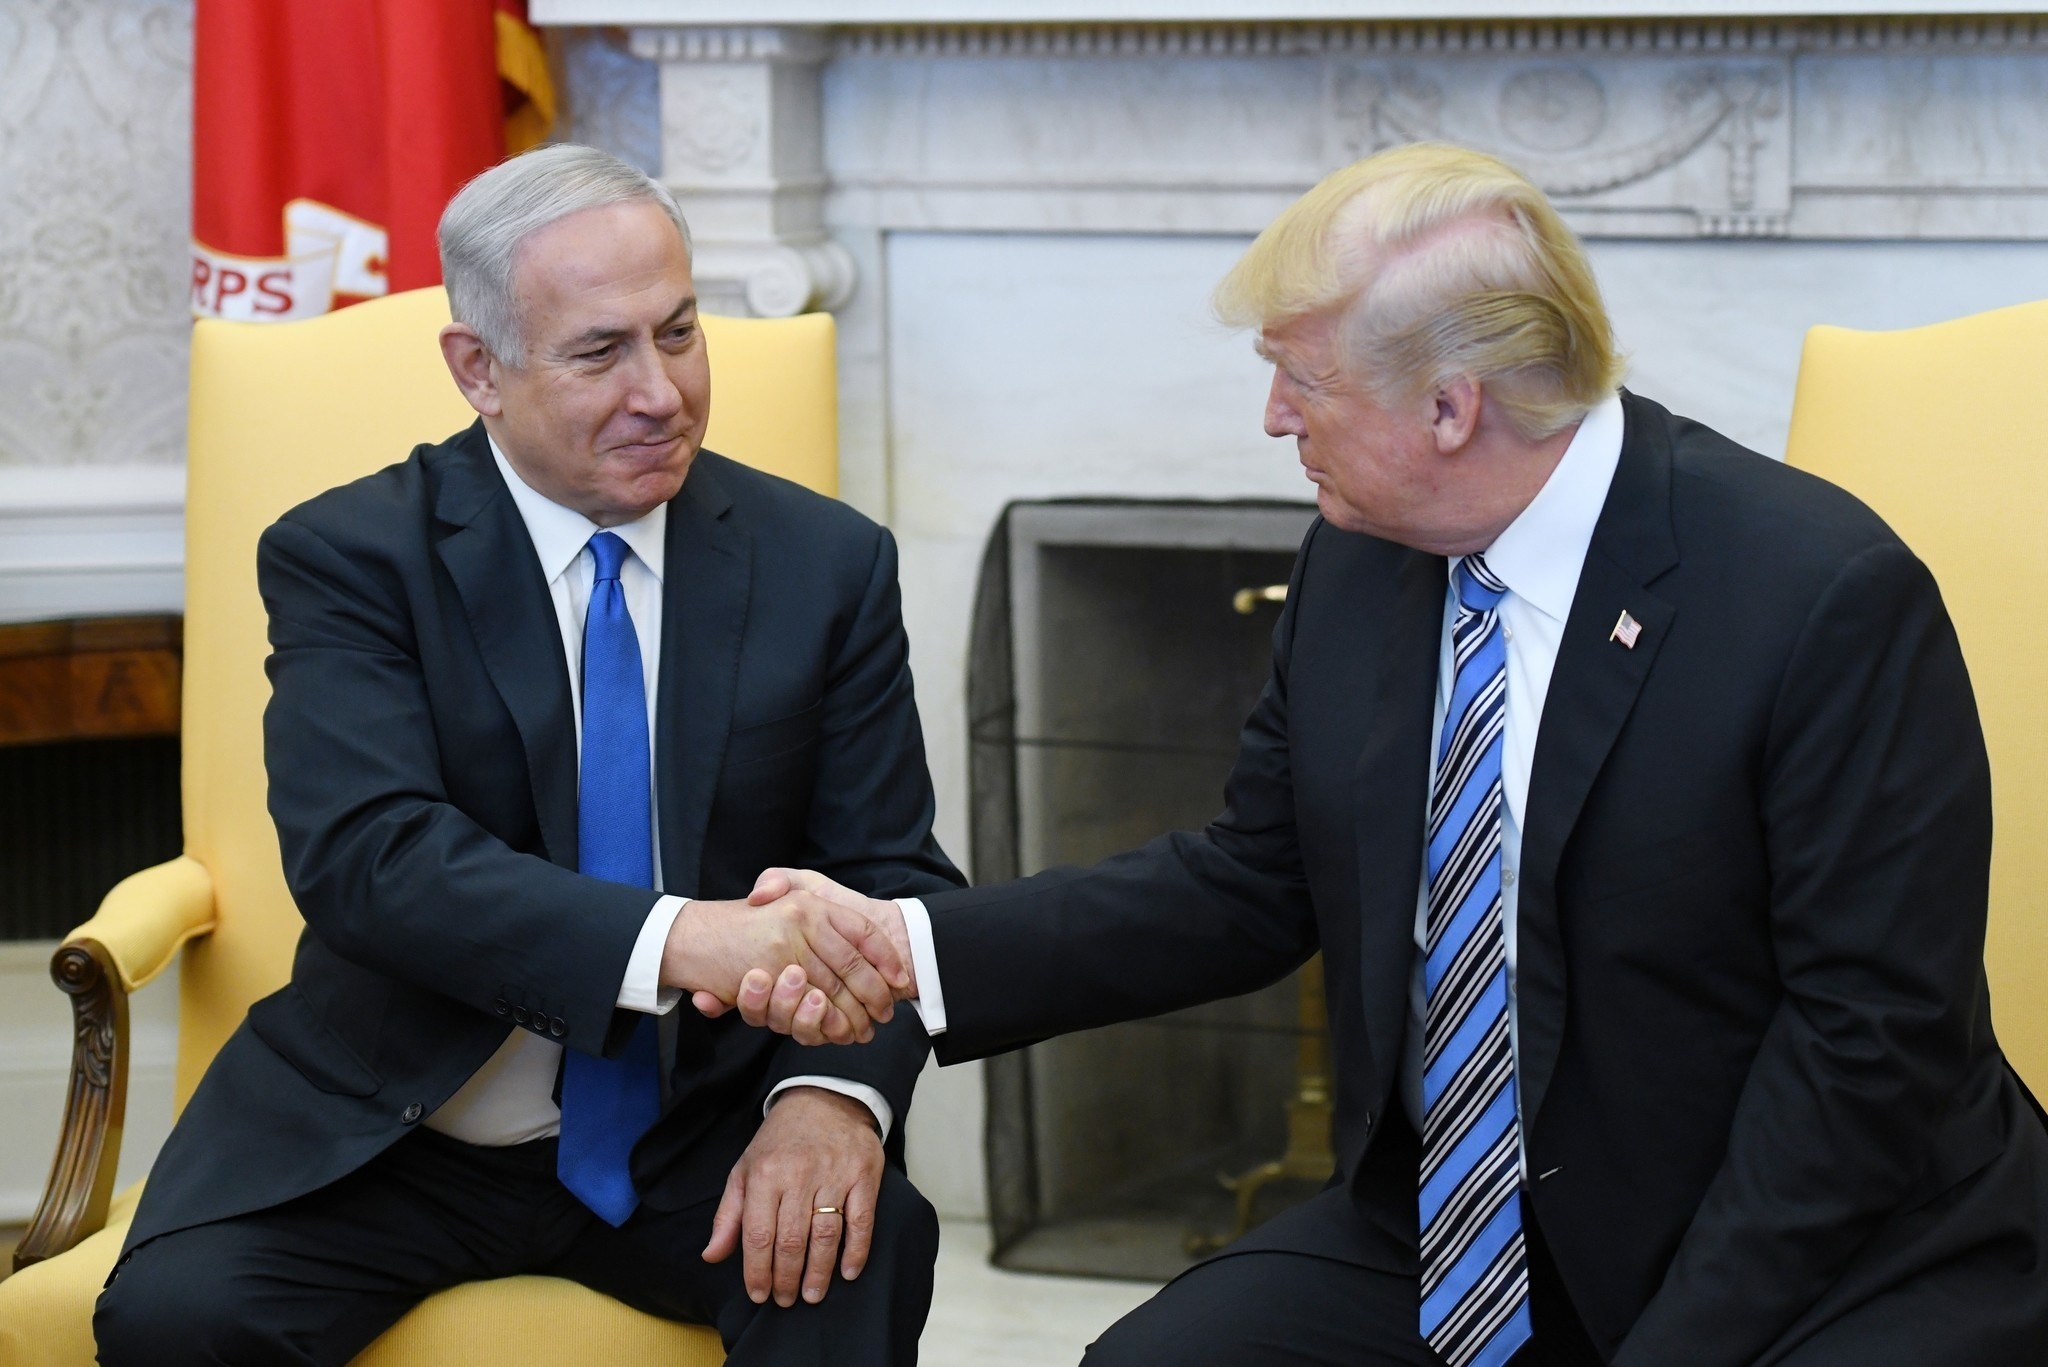 Trump dangles Israel trip for new embassy, but quiet on peace plan